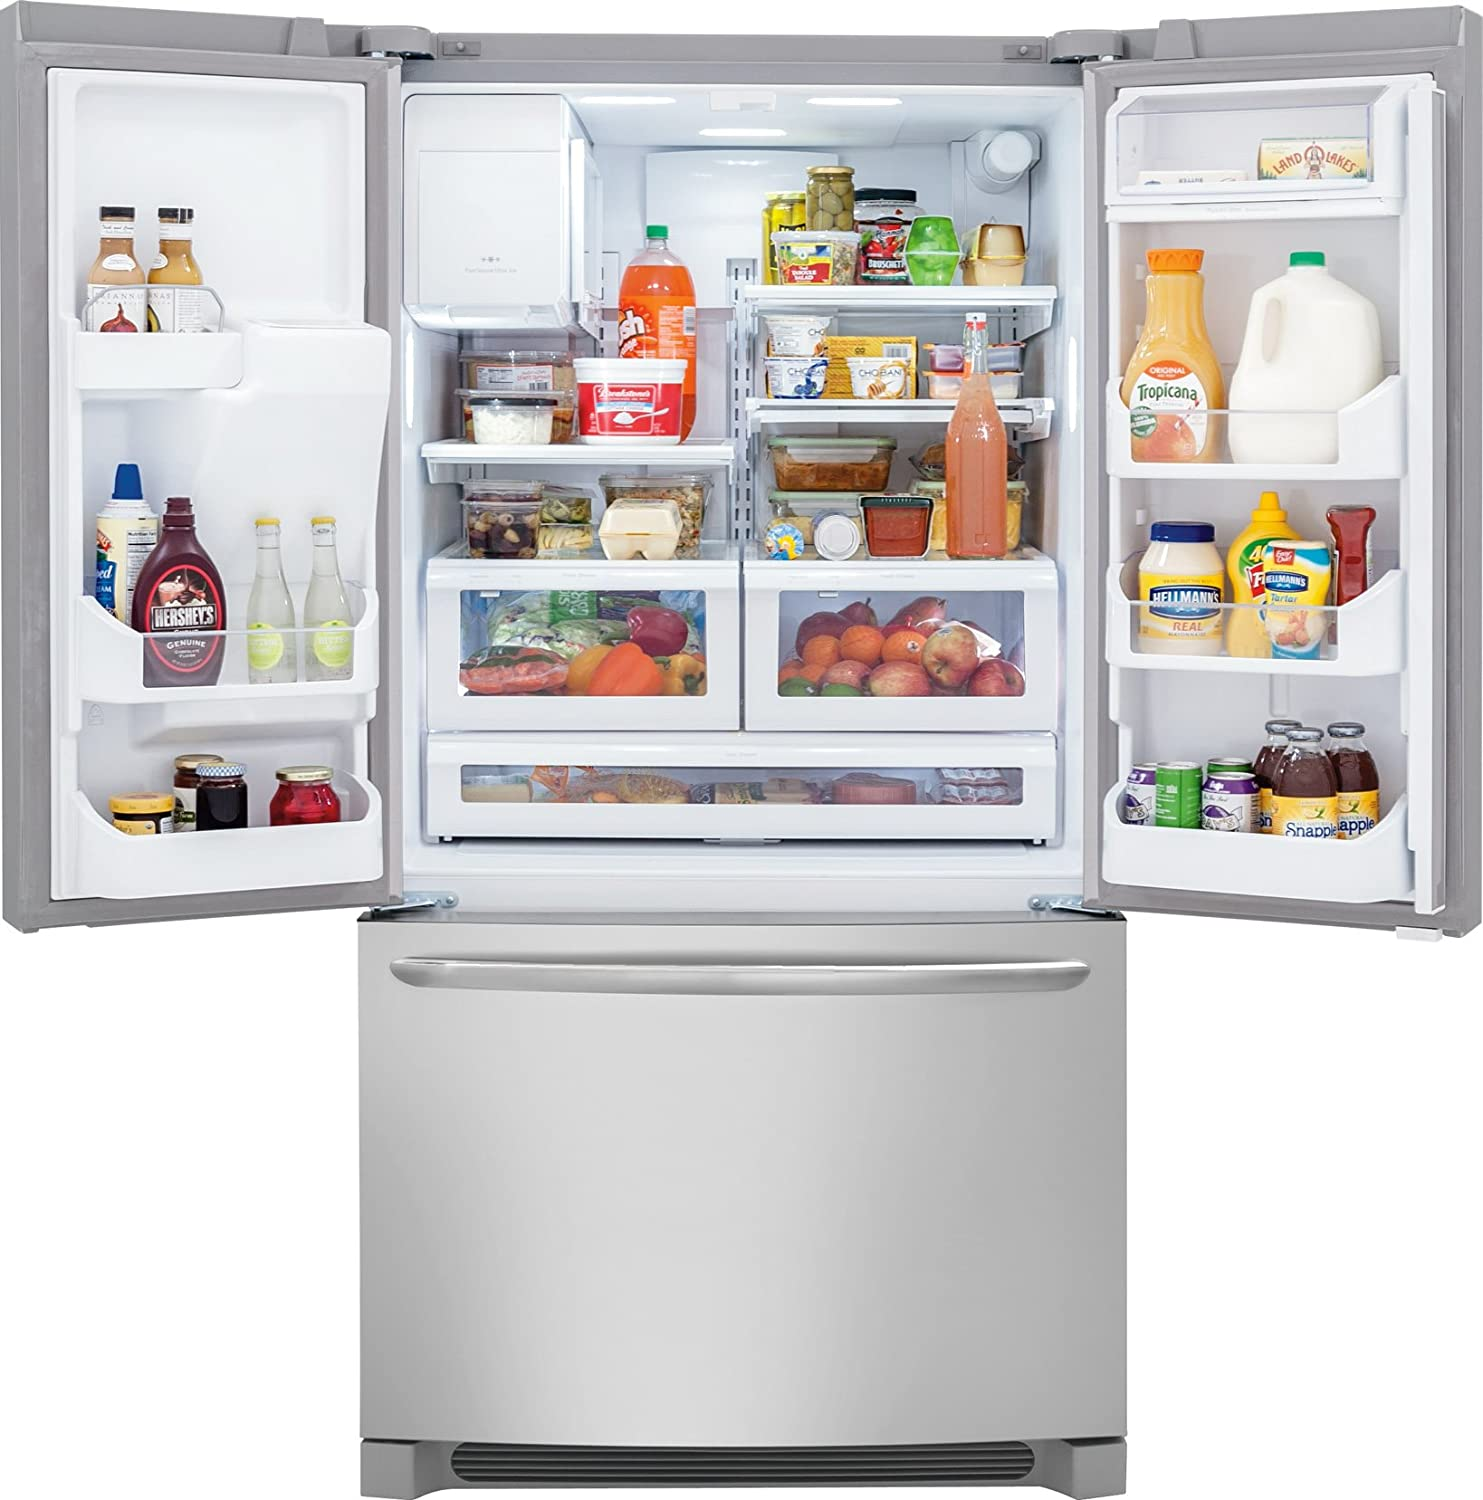 frigidaire door ideas second french refrigerator icemaker professional